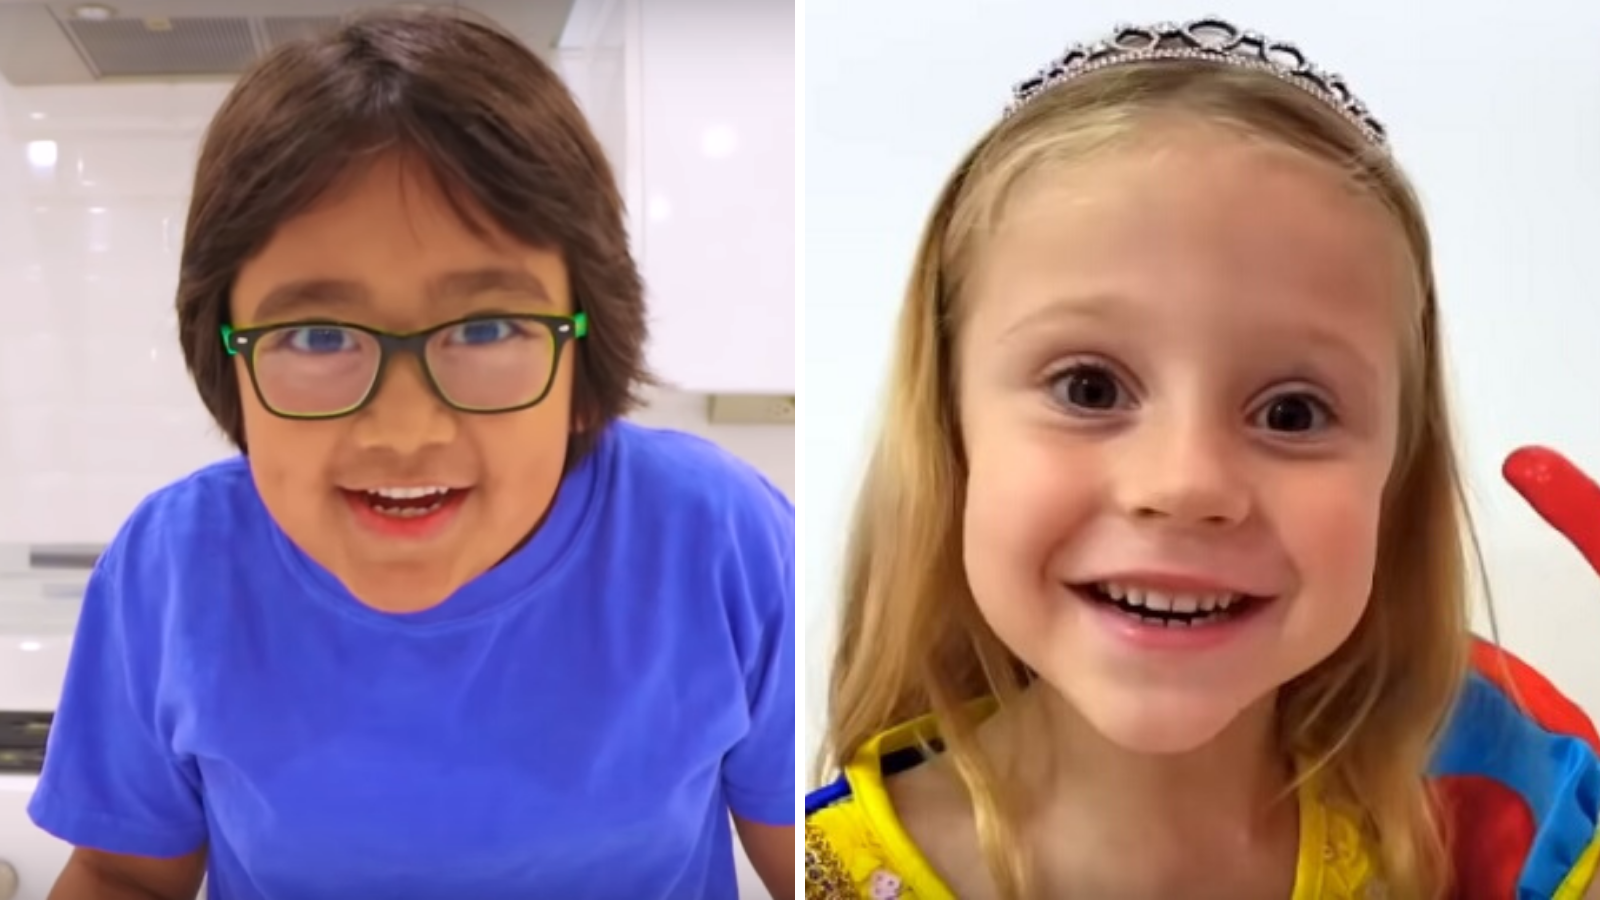 How two kids made $66m from bizarre YouTube trend